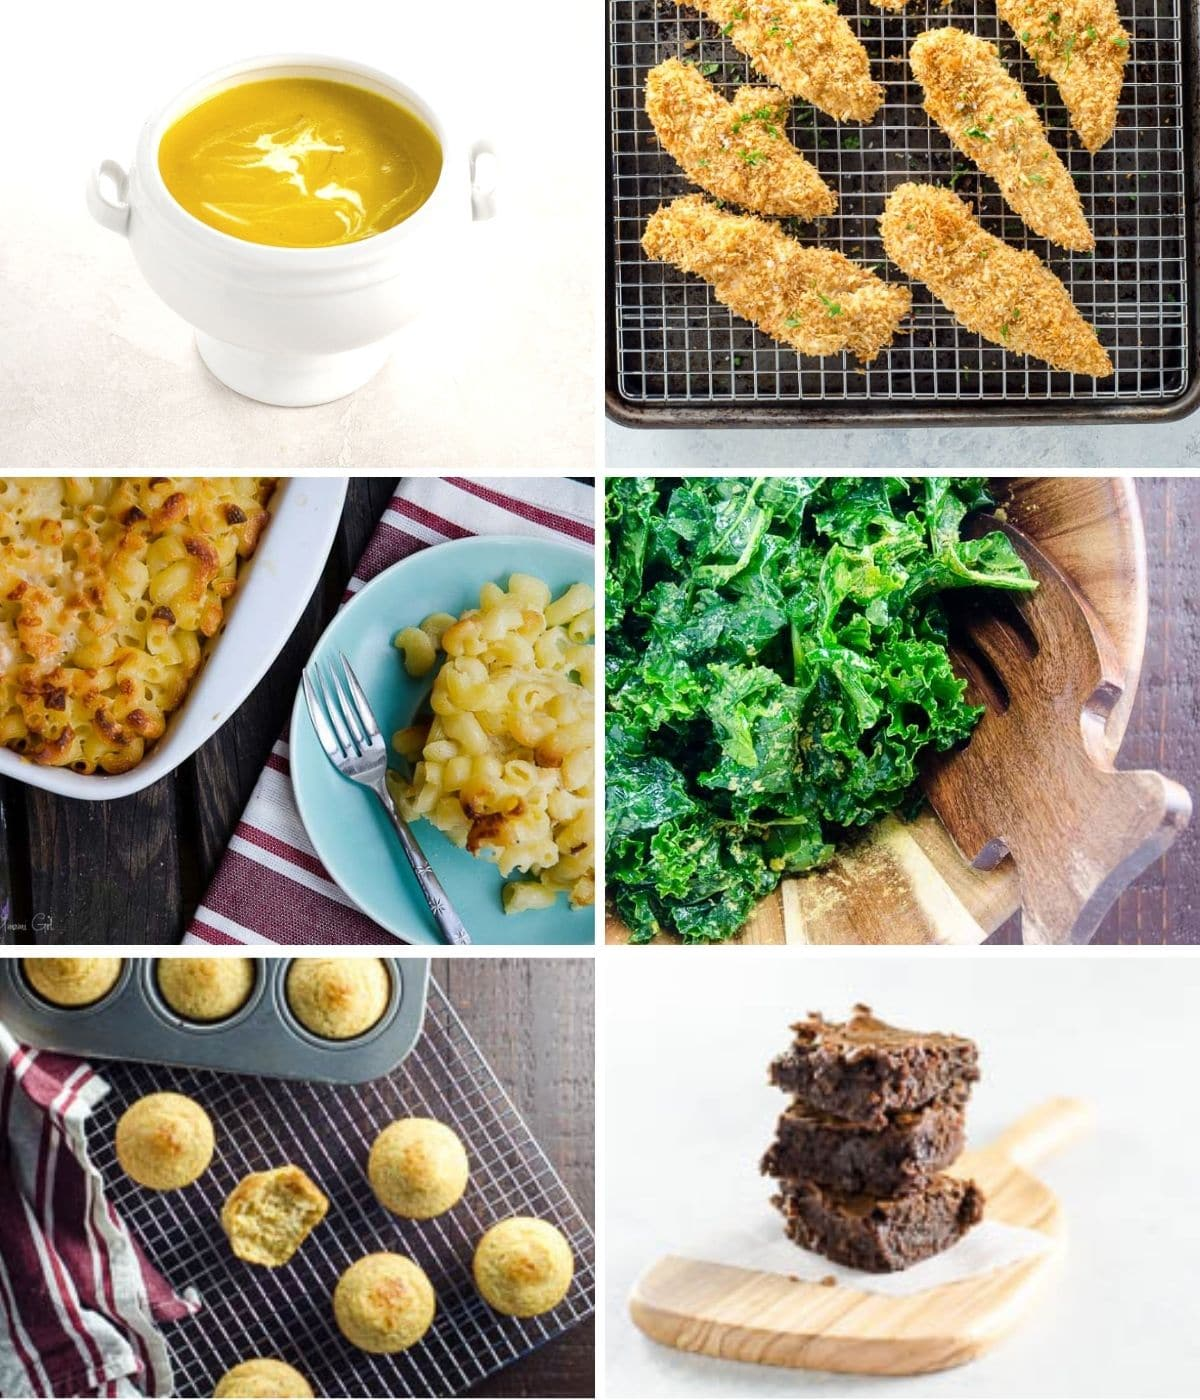 butternut soup, chicken tenders, mac and cheese, kale salad, cornbread muffins, and brownies